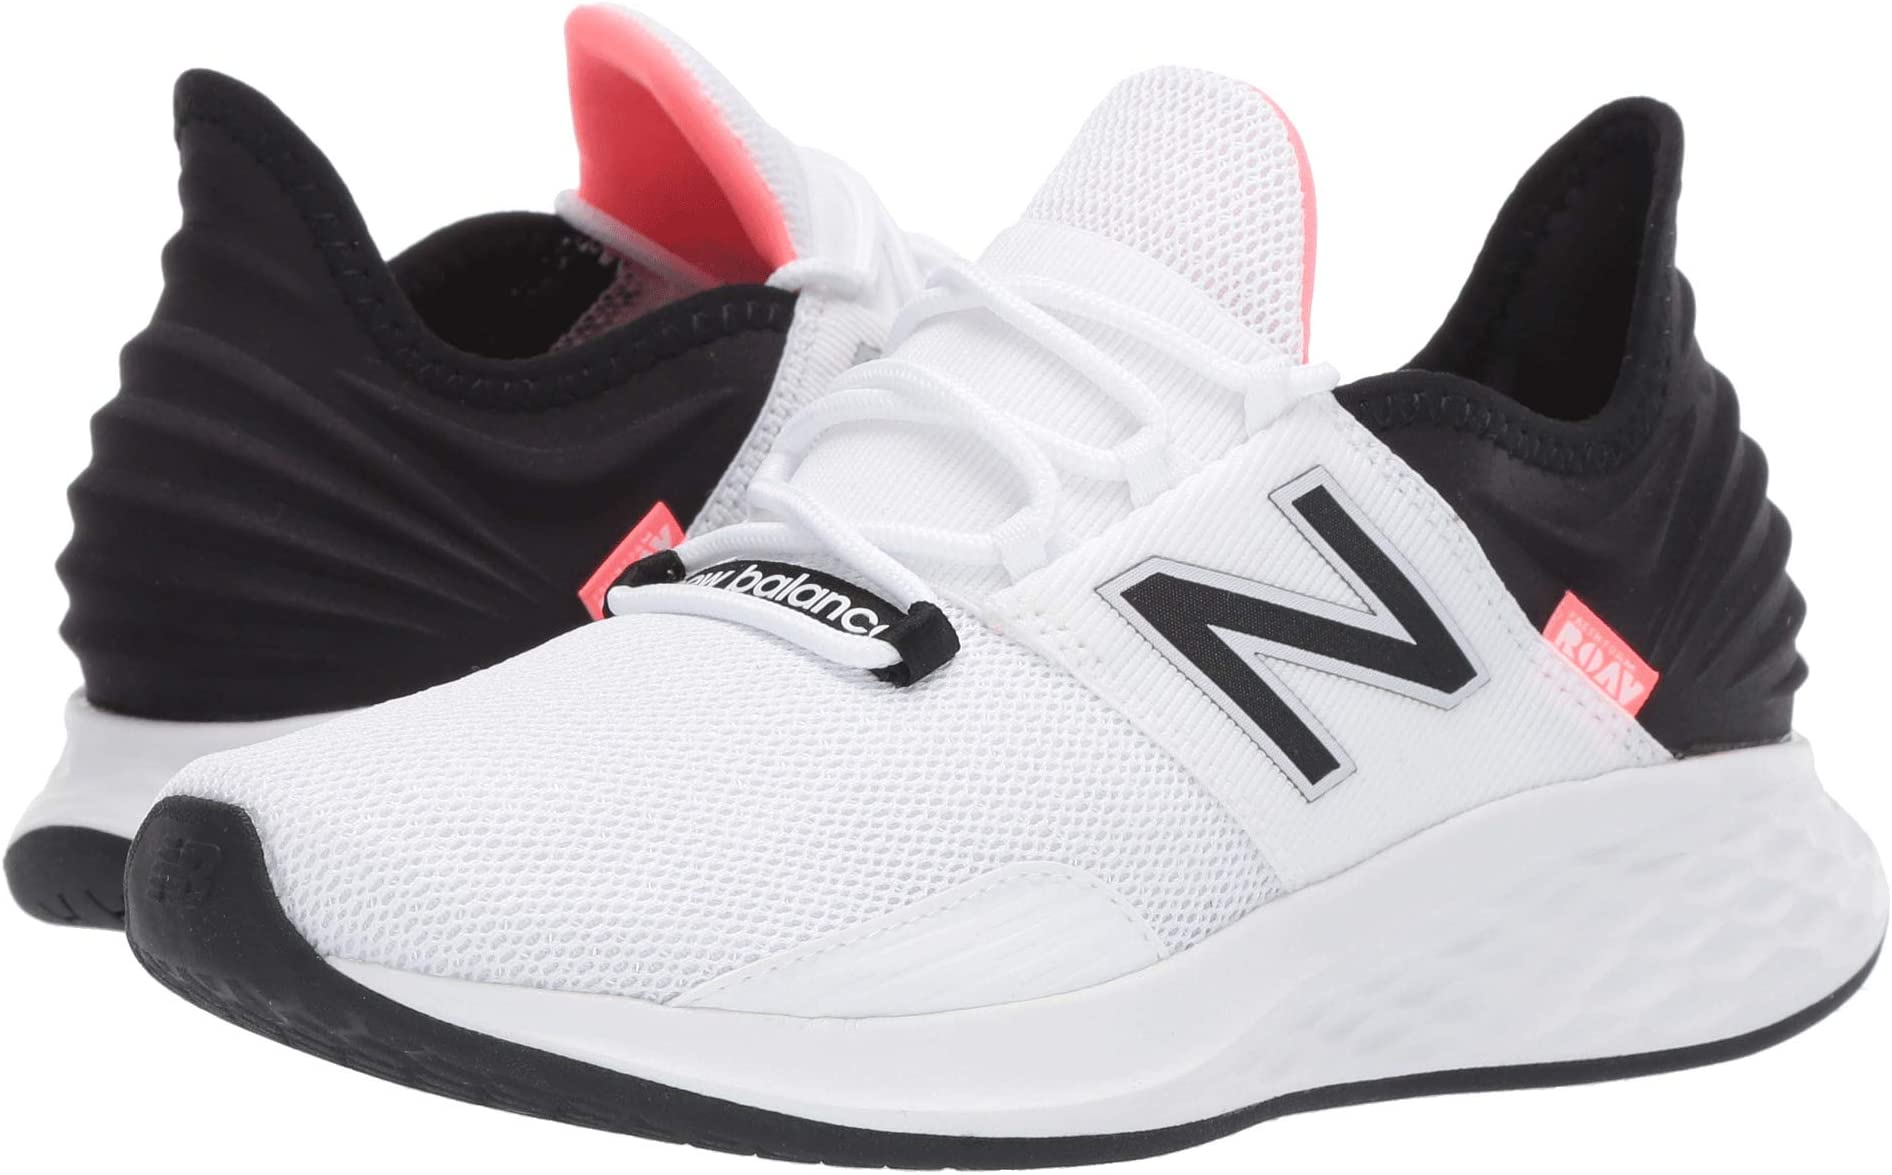 2547756551c65 New Balance Shoes, Clothing, Activewear, Socks | Zappos.com